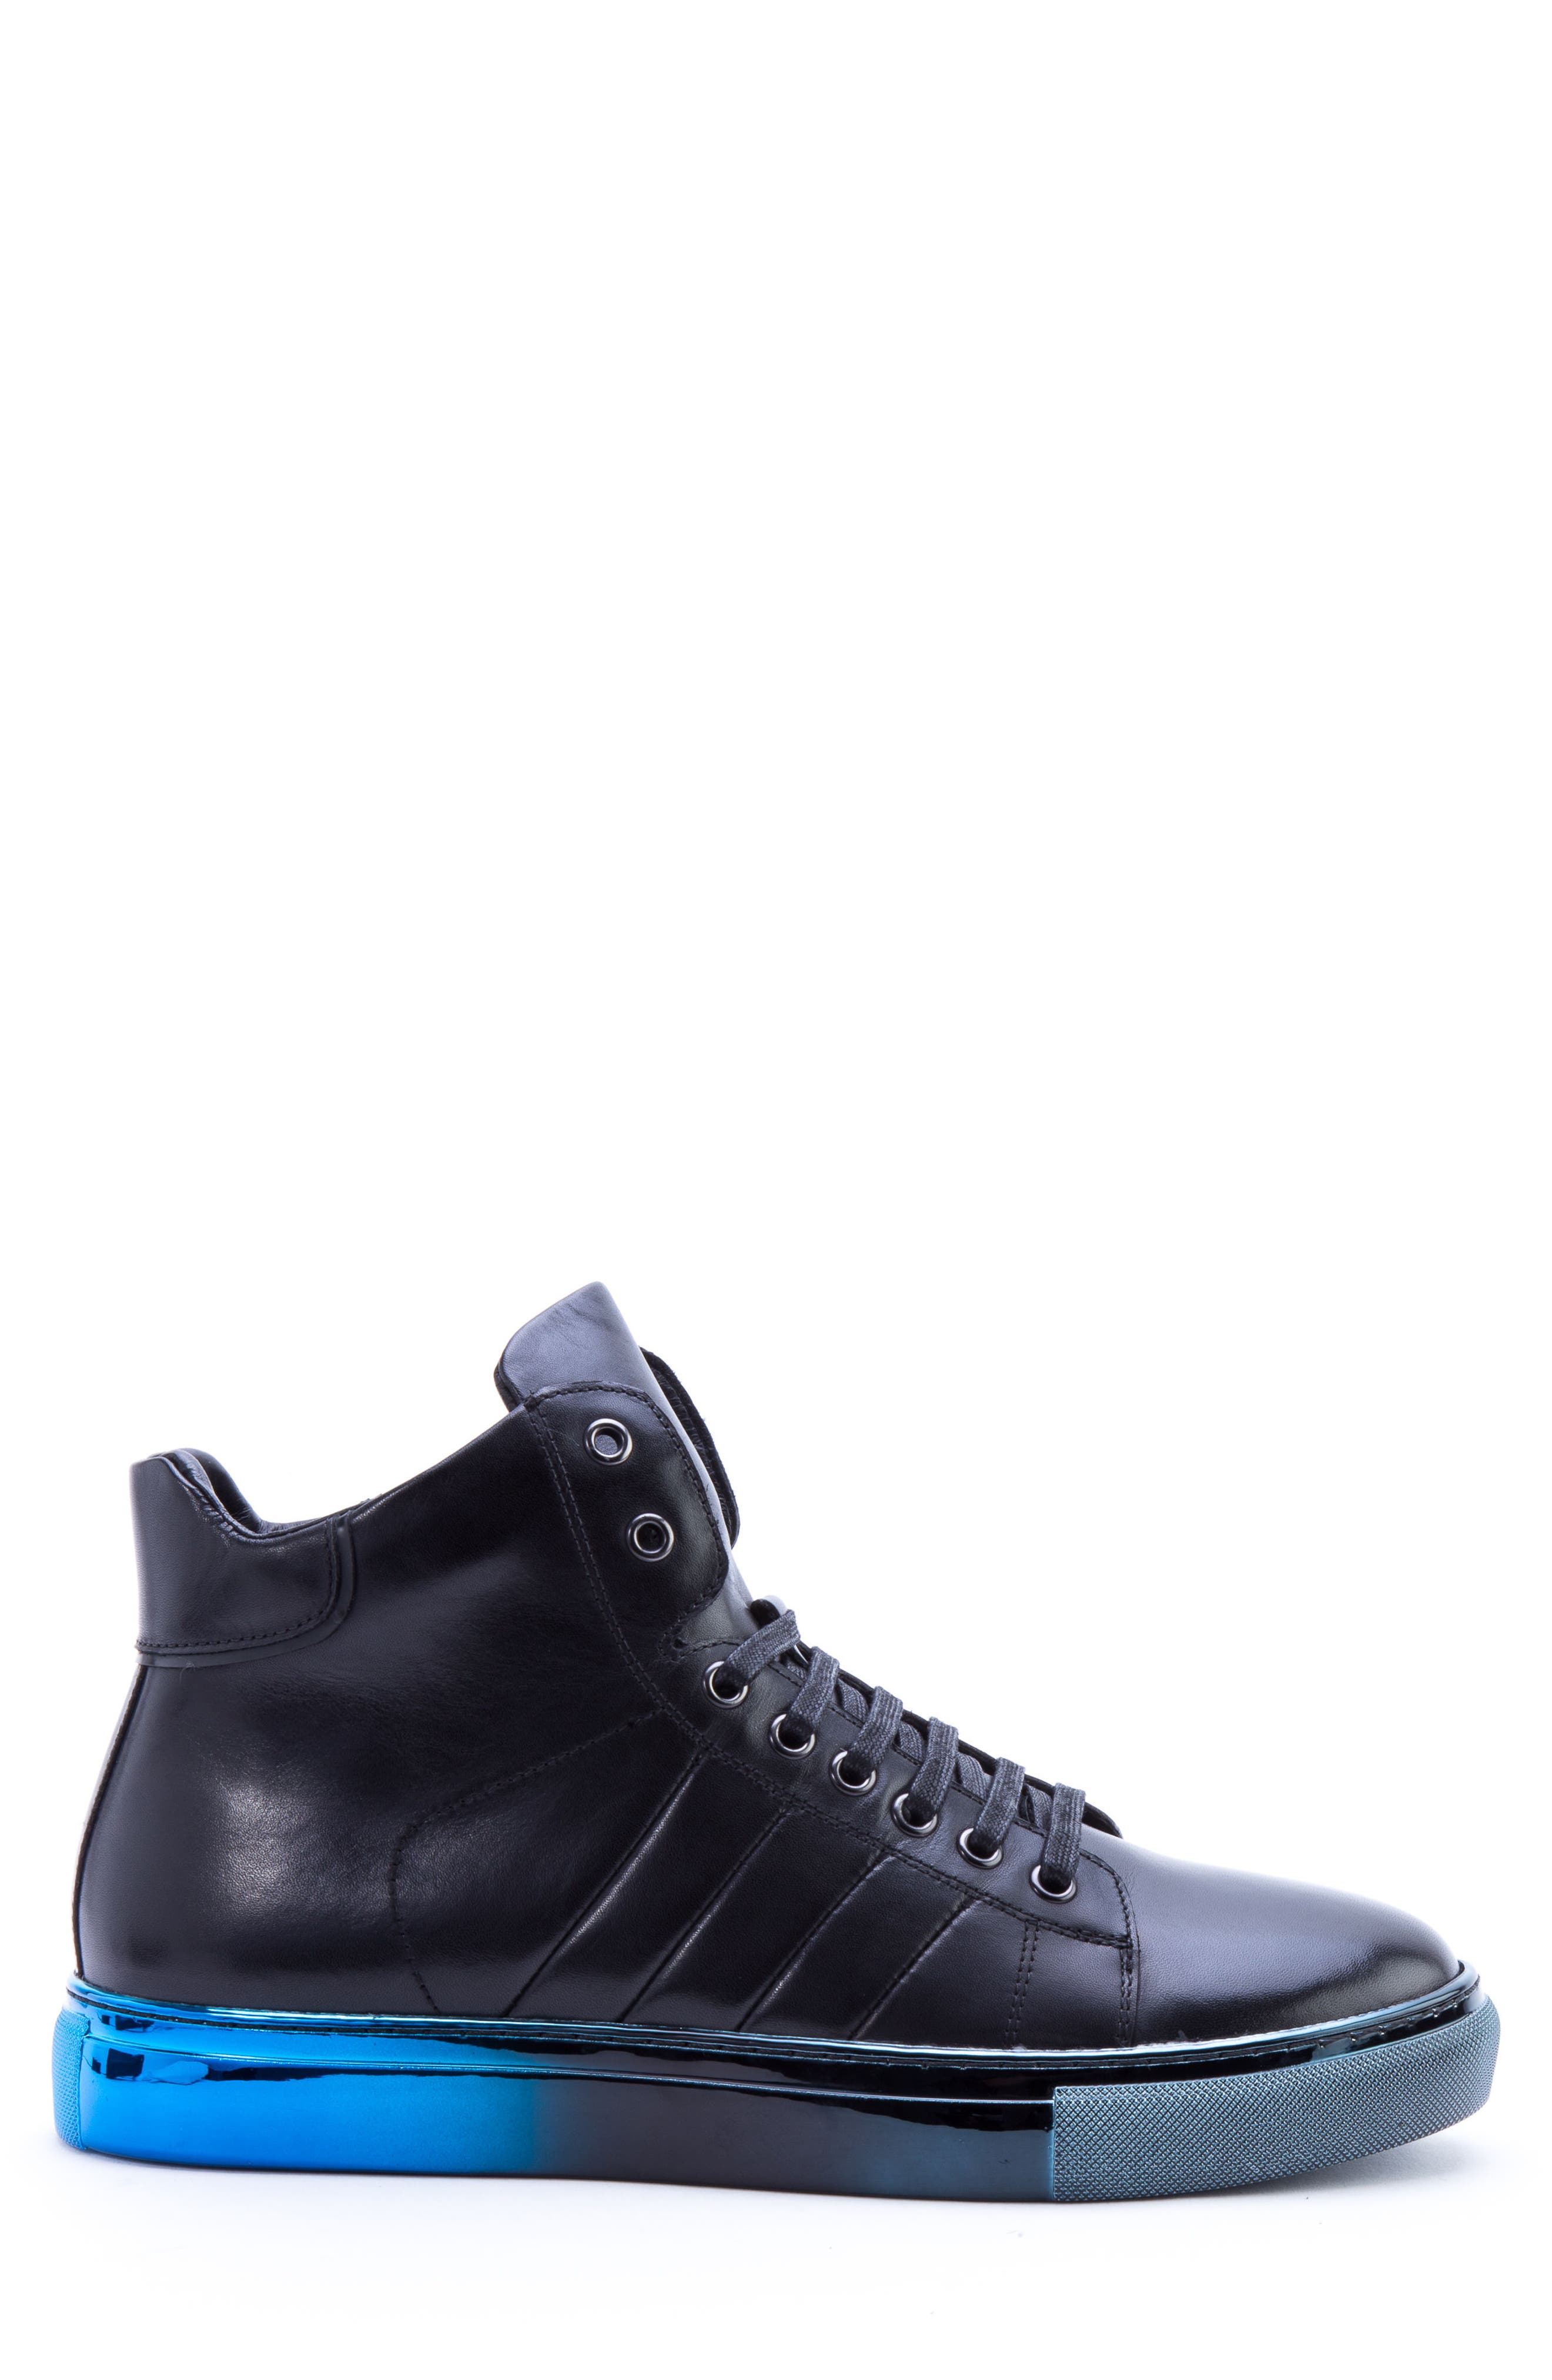 Hunter High Top Sneaker,                             Alternate thumbnail 3, color,                             NAVY LEATHER